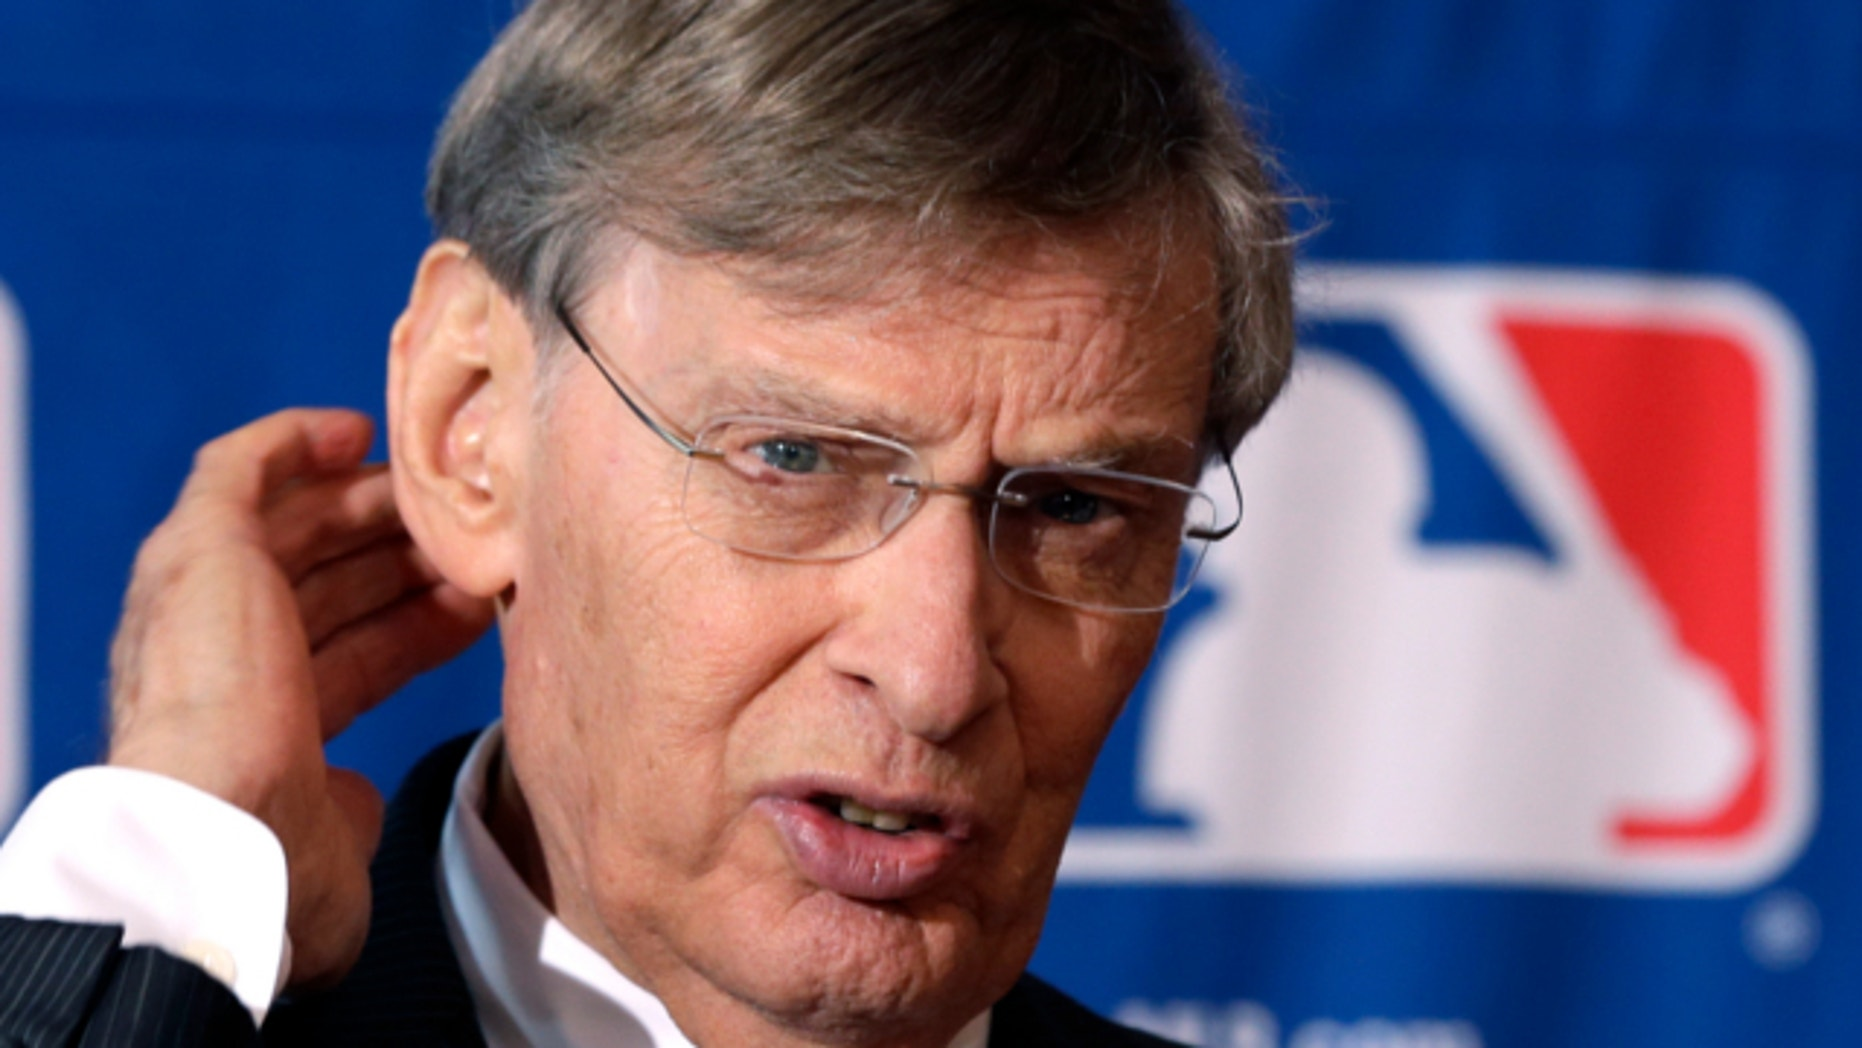 Aug. 15, 2013: Major League Baseball Commissioner Bud Selig speaks during a news conference following baseball meetings at the Otesaga Hotel in Cooperstown, N.Y.